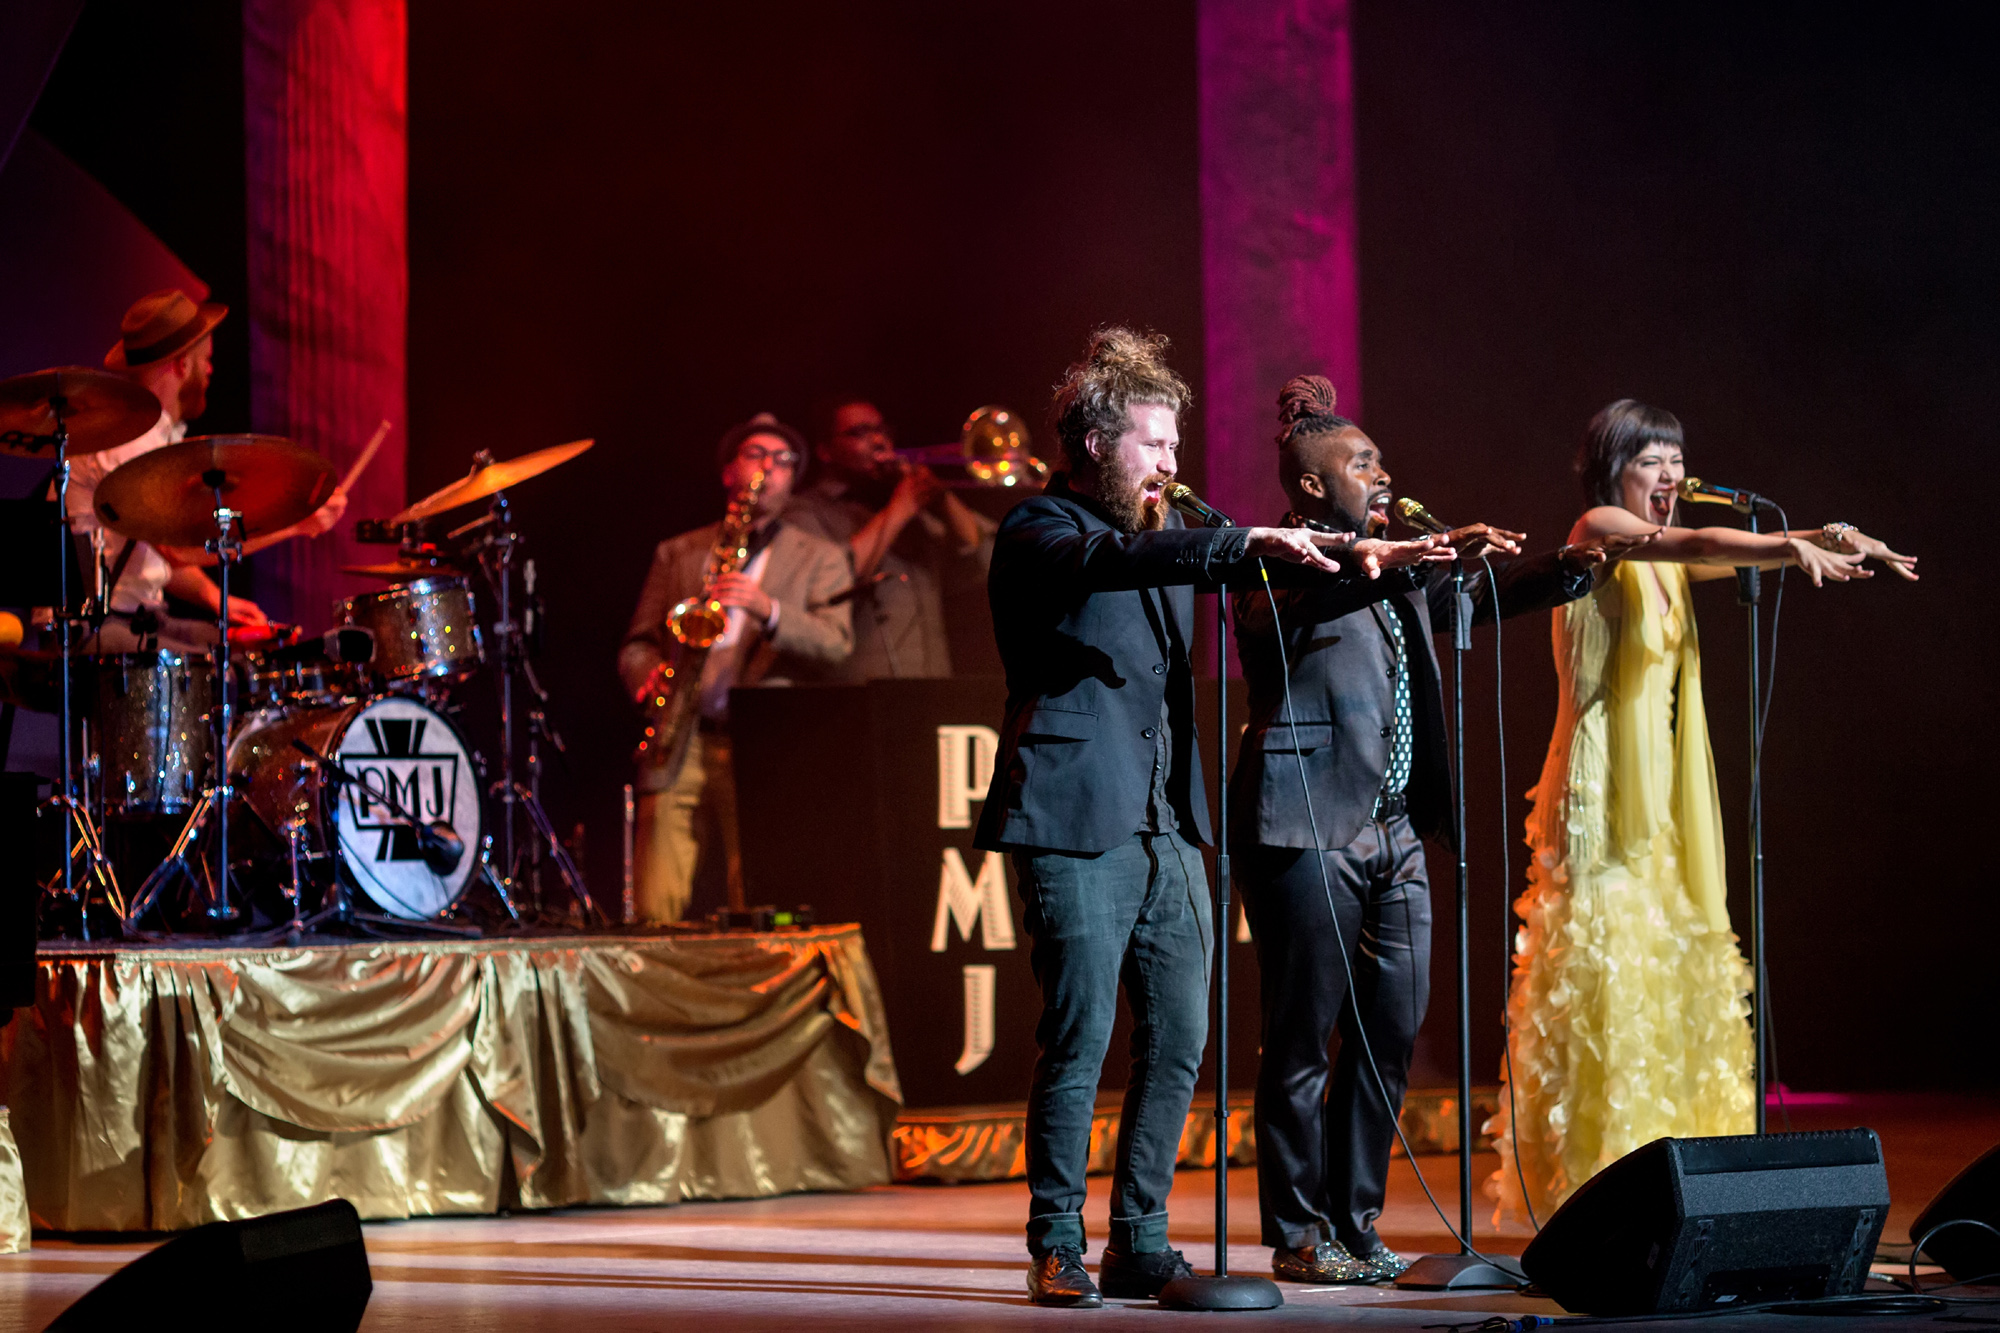 Postmodern Jukebox Brings Vintage Style Pop Hits Back To